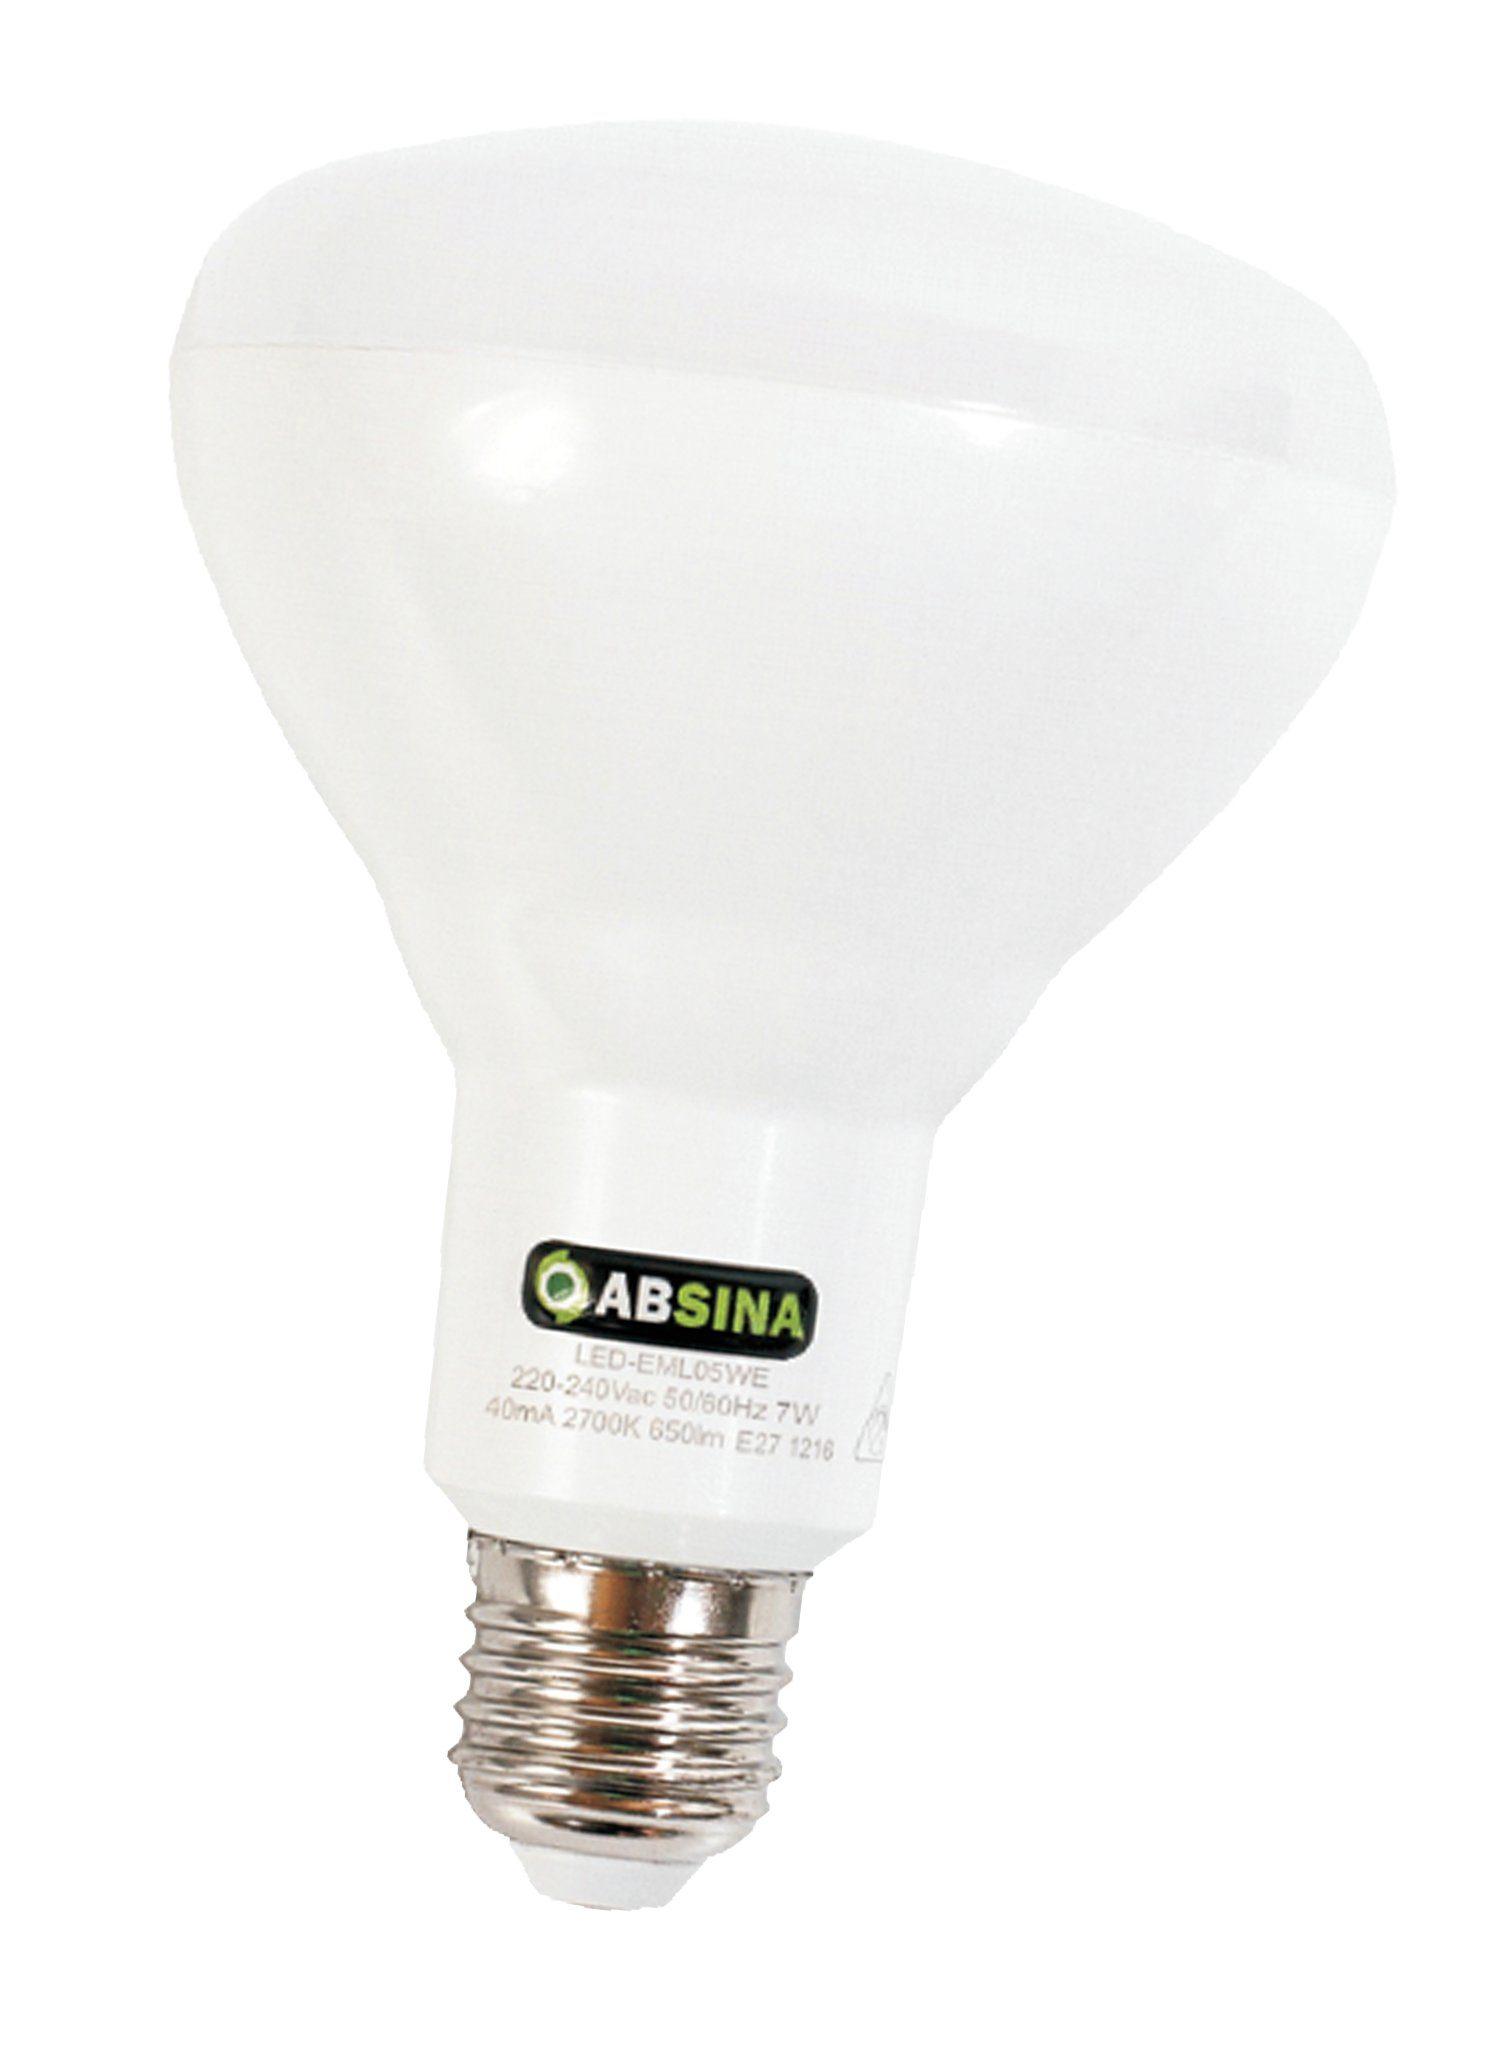 ABSINA Energiespar LED mit Notbeleuchtung bei Stromausfall in A-Form »DUO light 2«